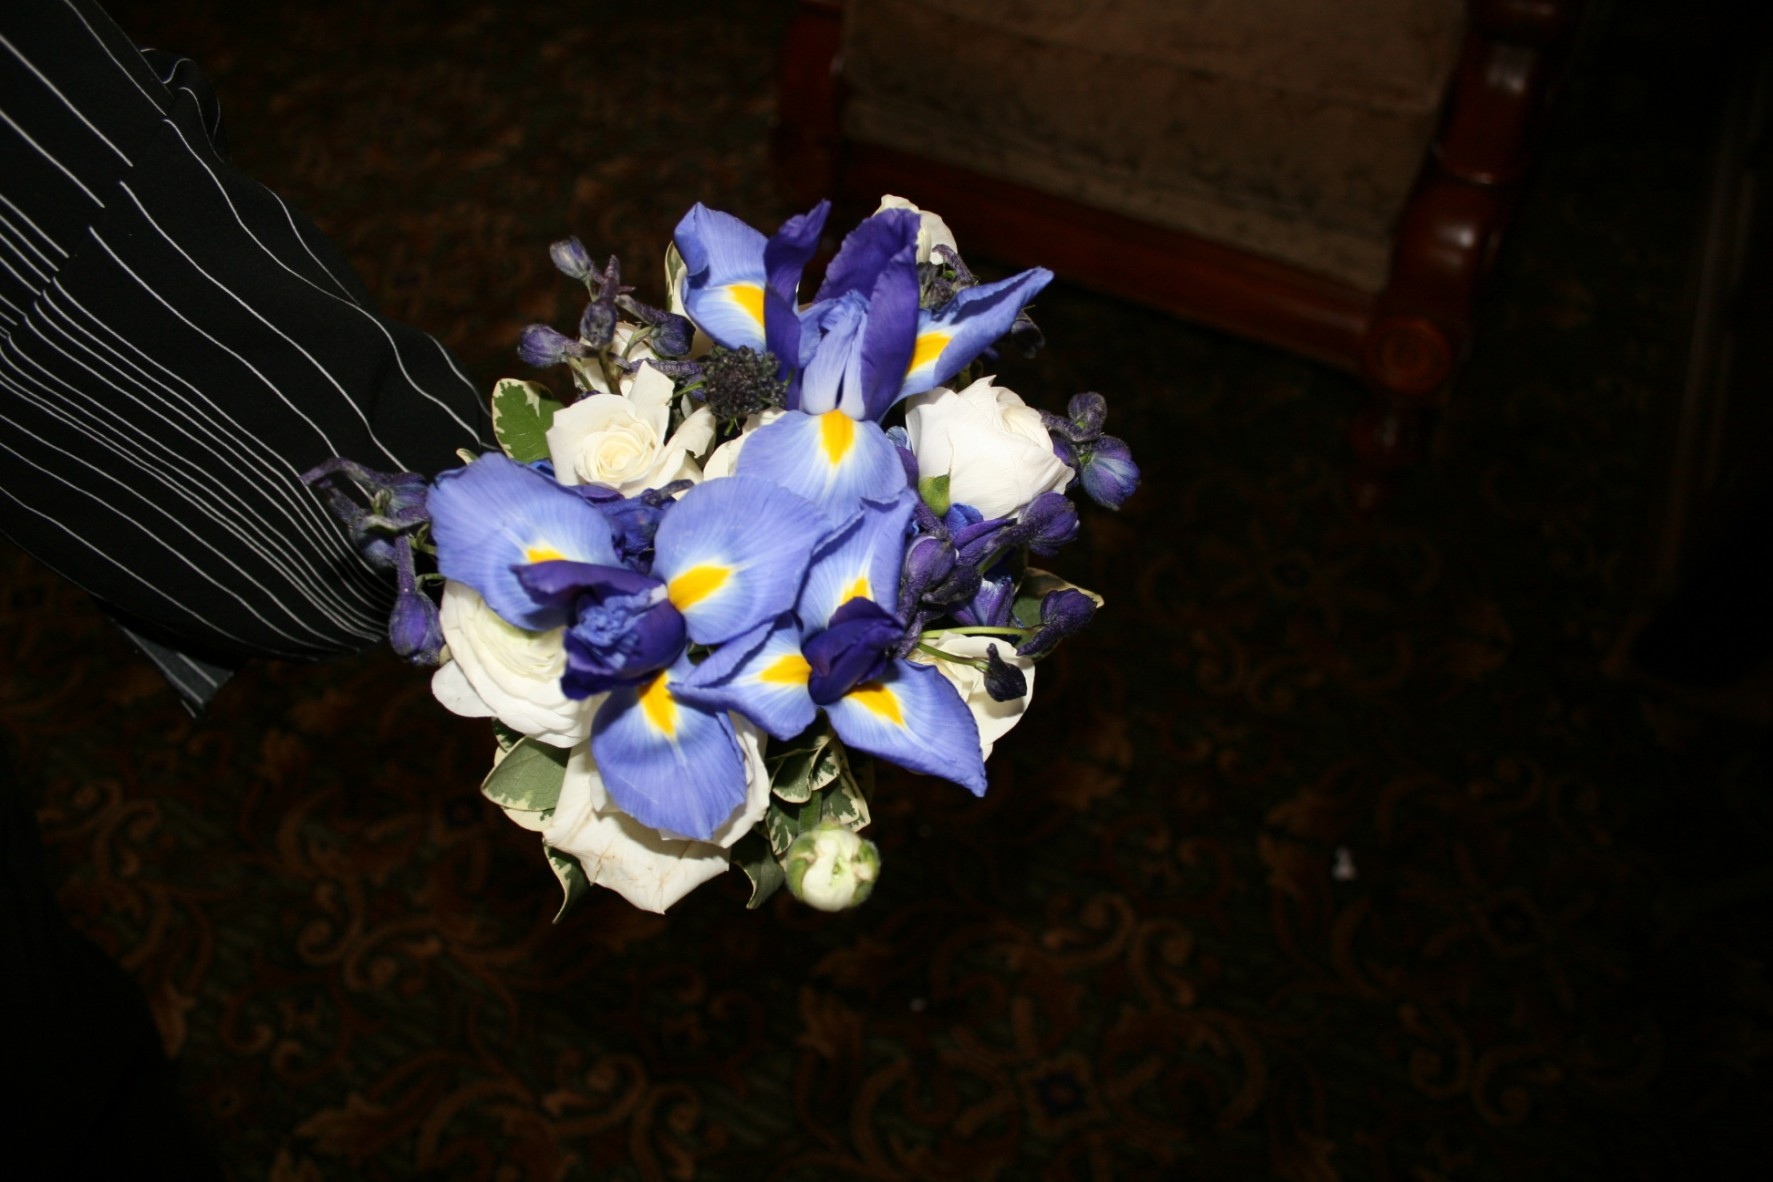 924 WHITE ROSE & IRIS BOUQUET